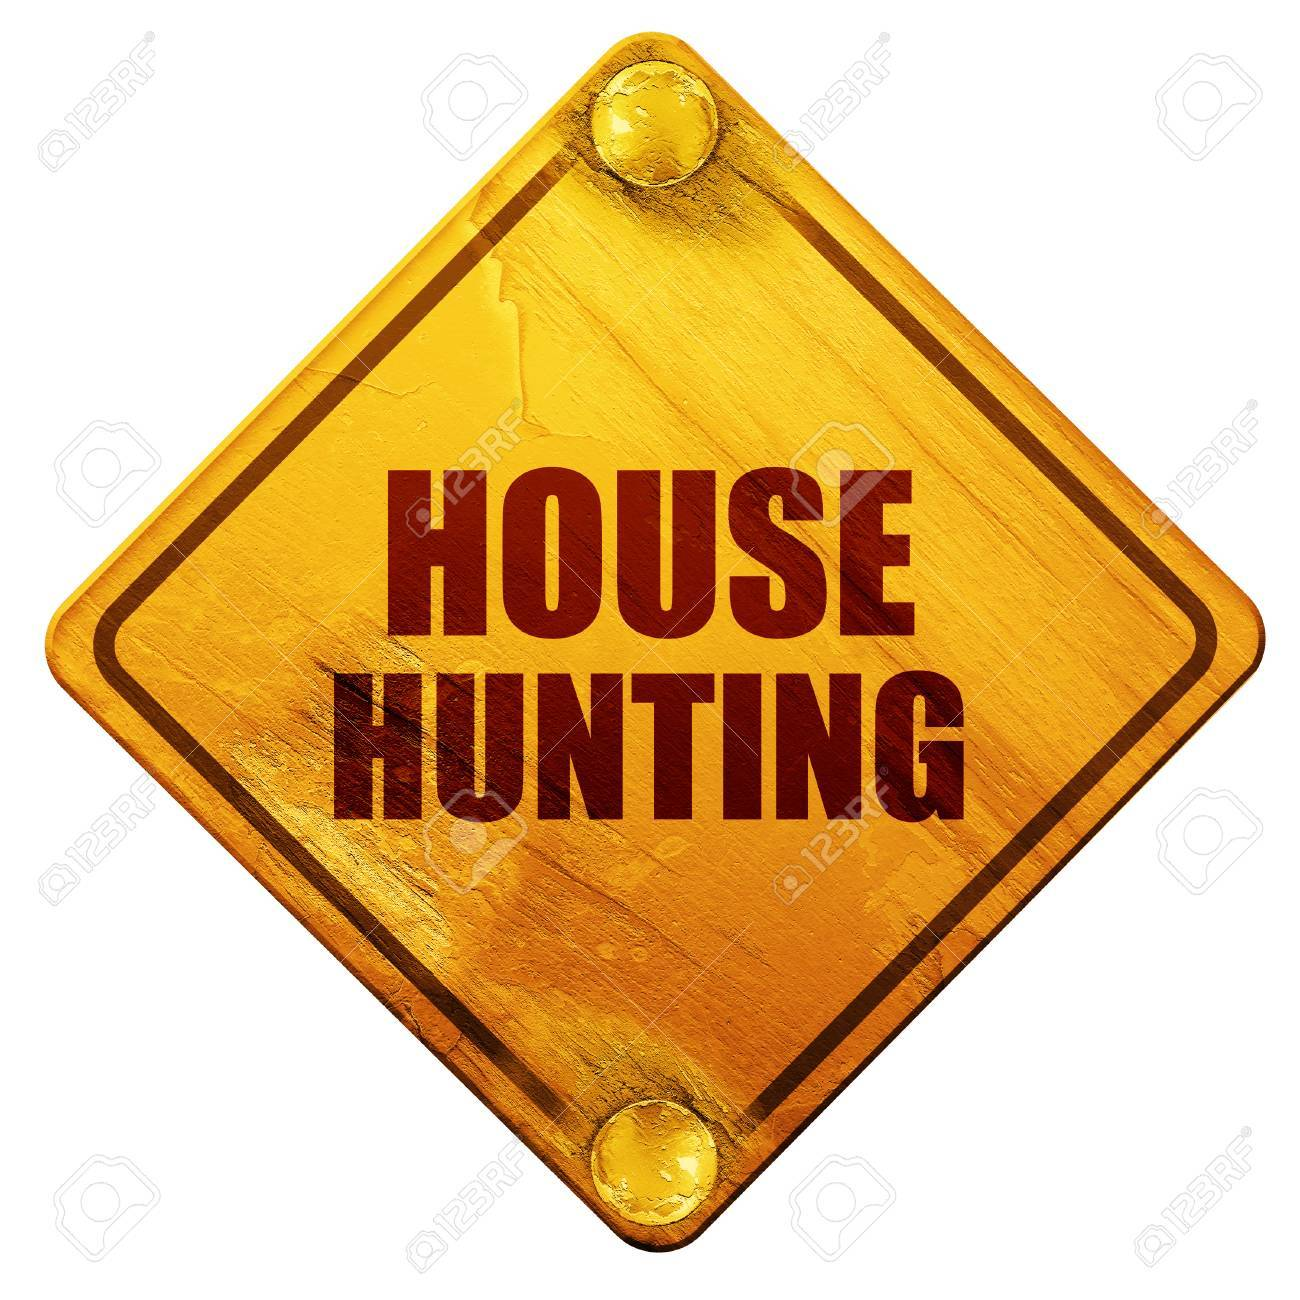 Image result for house hunting